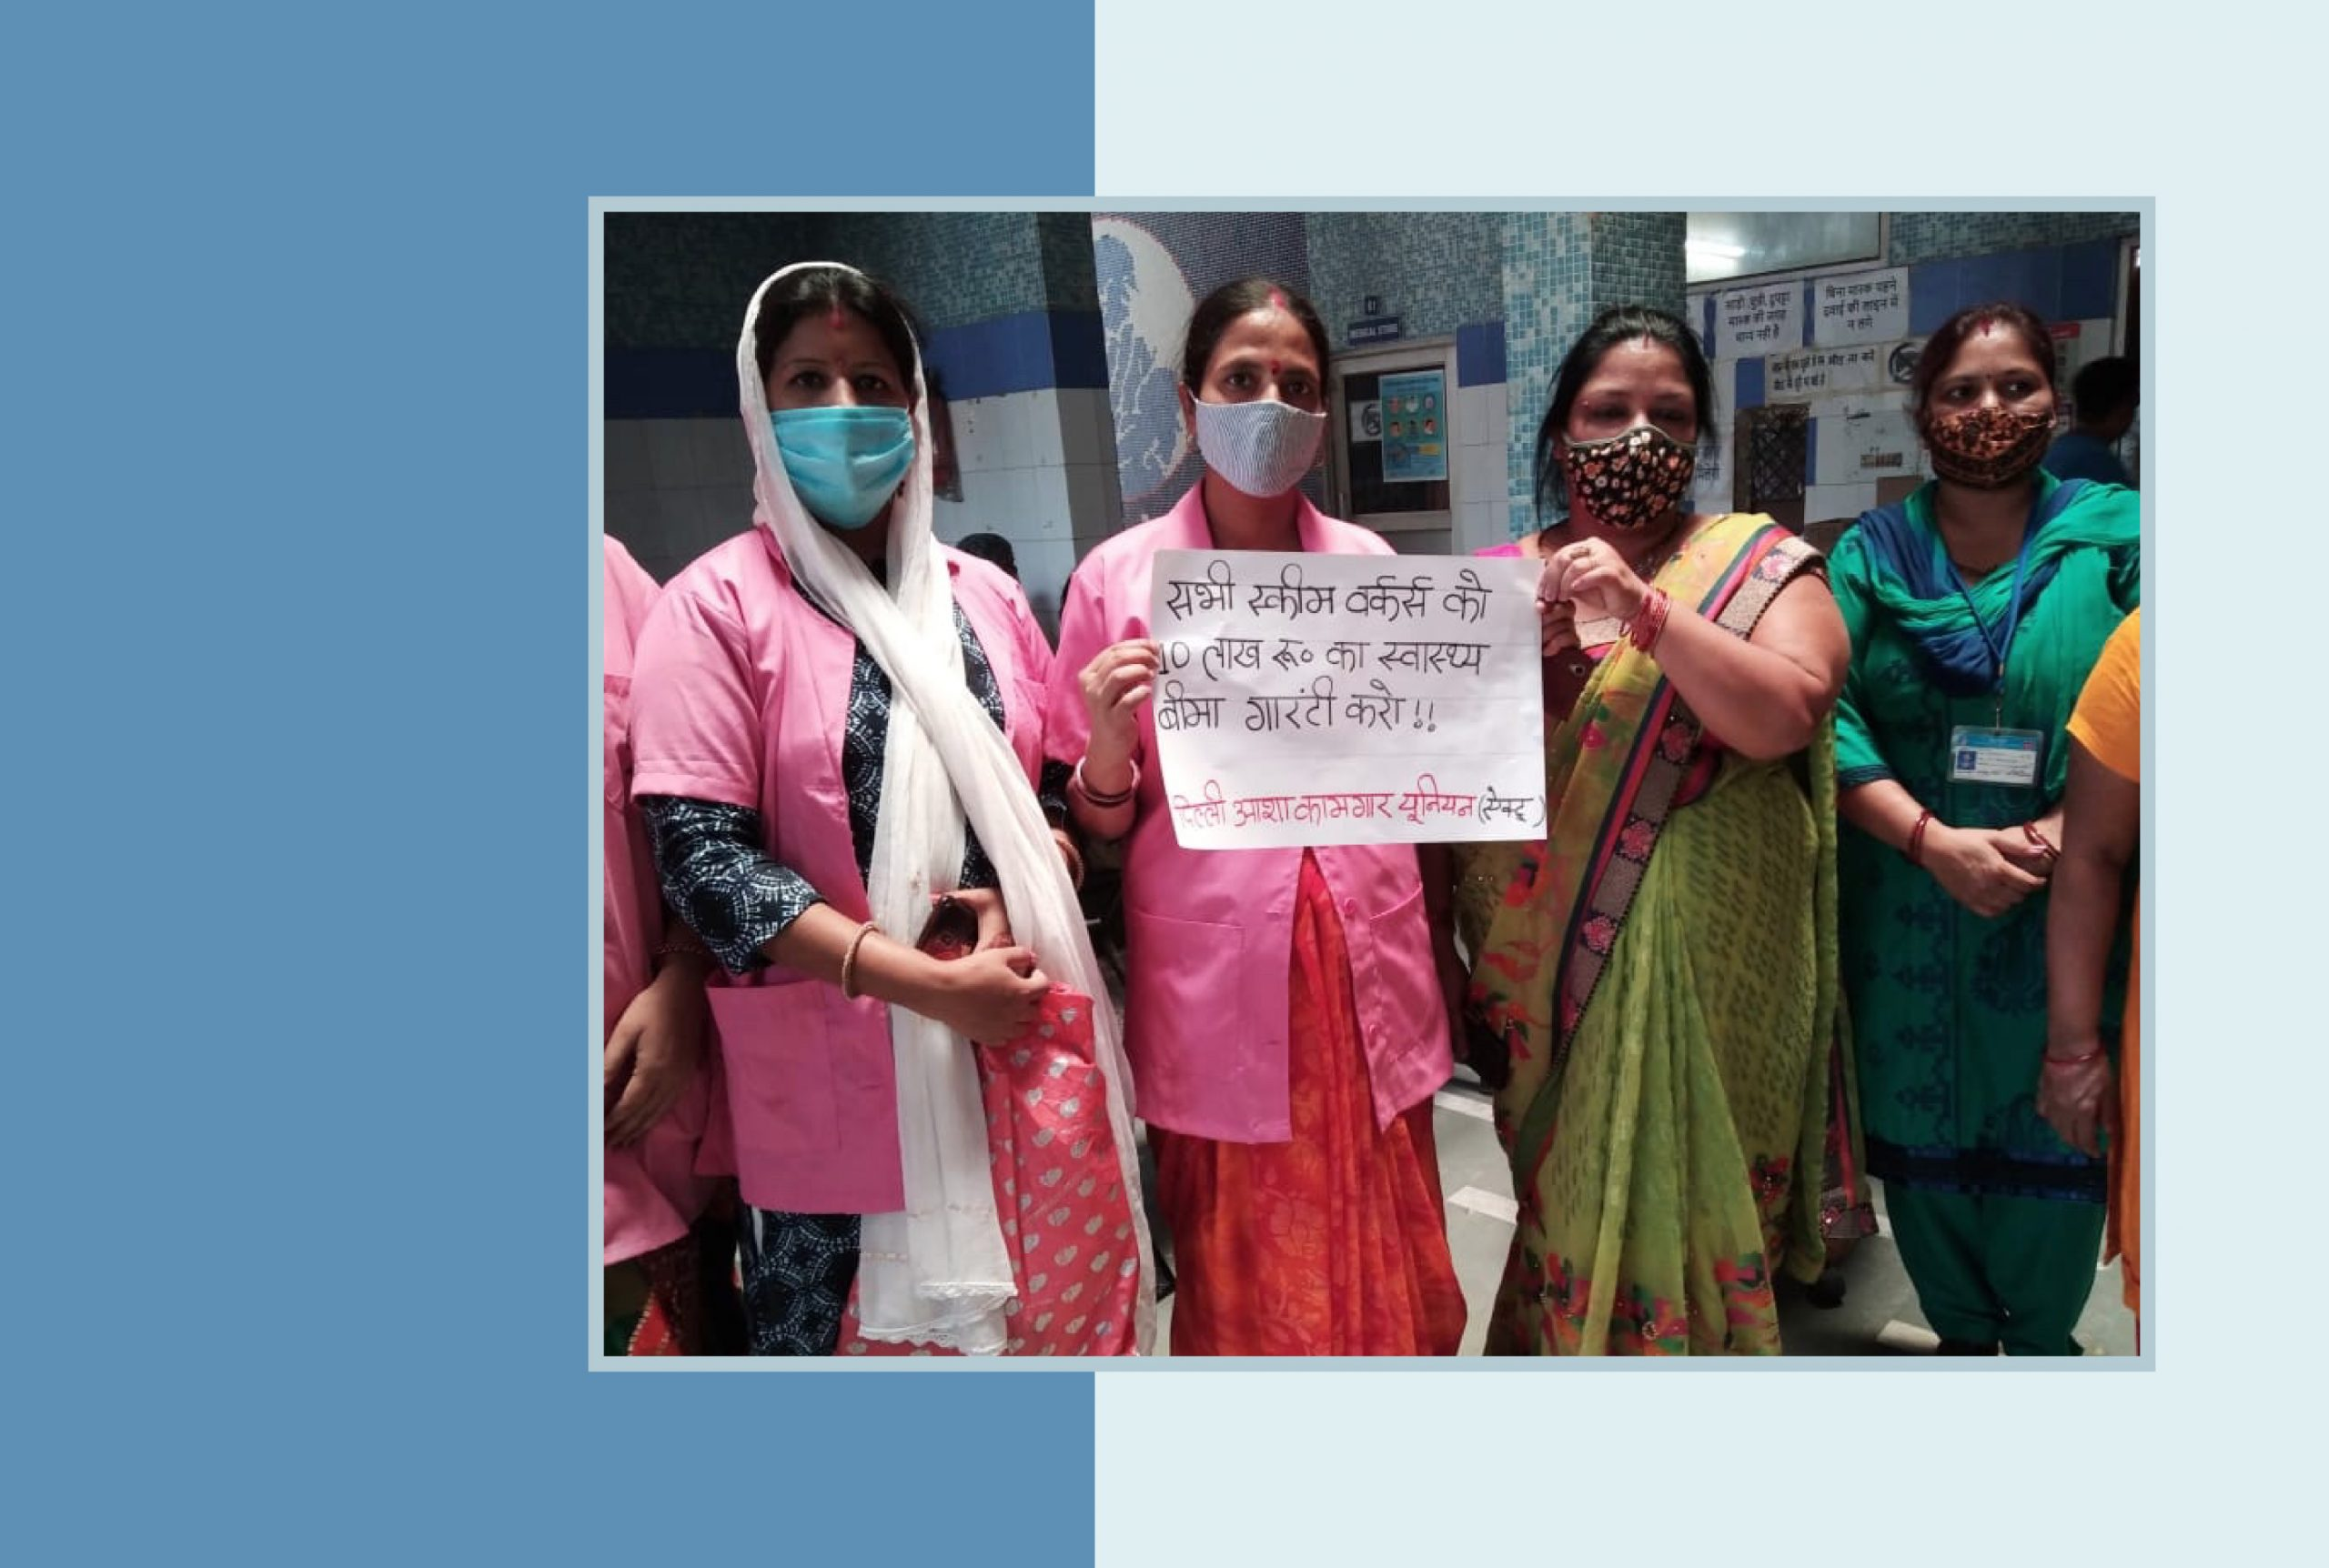 An image of ASHA workers in Delhi protesting low wages and no protective gear from the government, set against a blue background